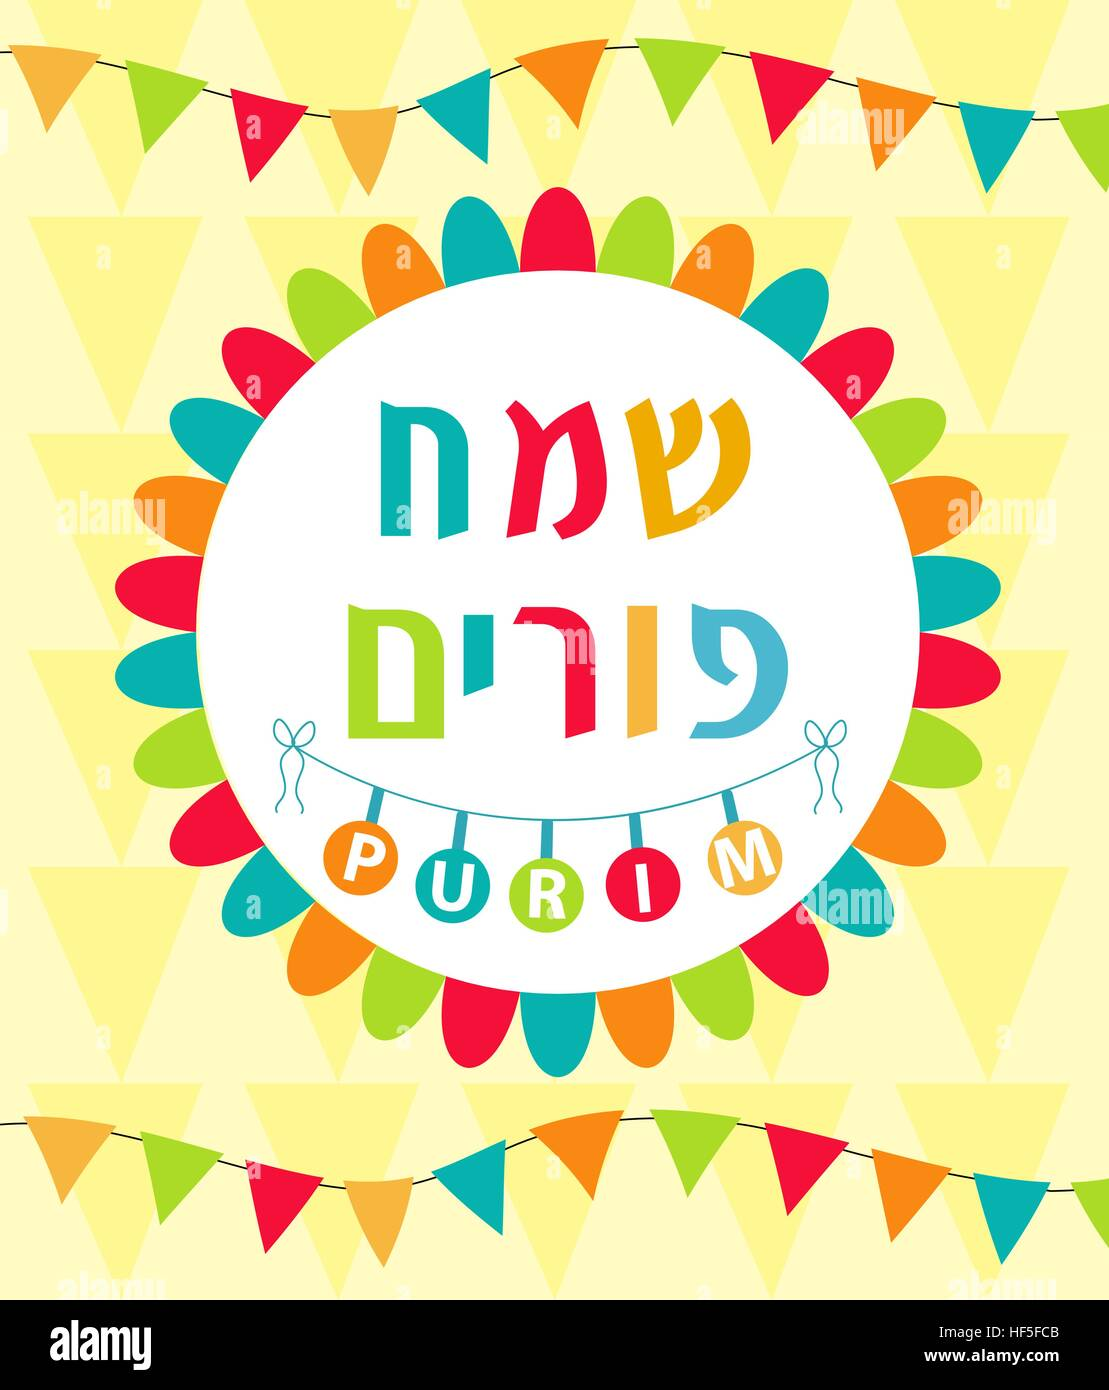 Happy purim template greeting card poster flyer frame for text happy purim template greeting card poster flyer frame for text jewish holiday carnival vector illustration kristyandbryce Images